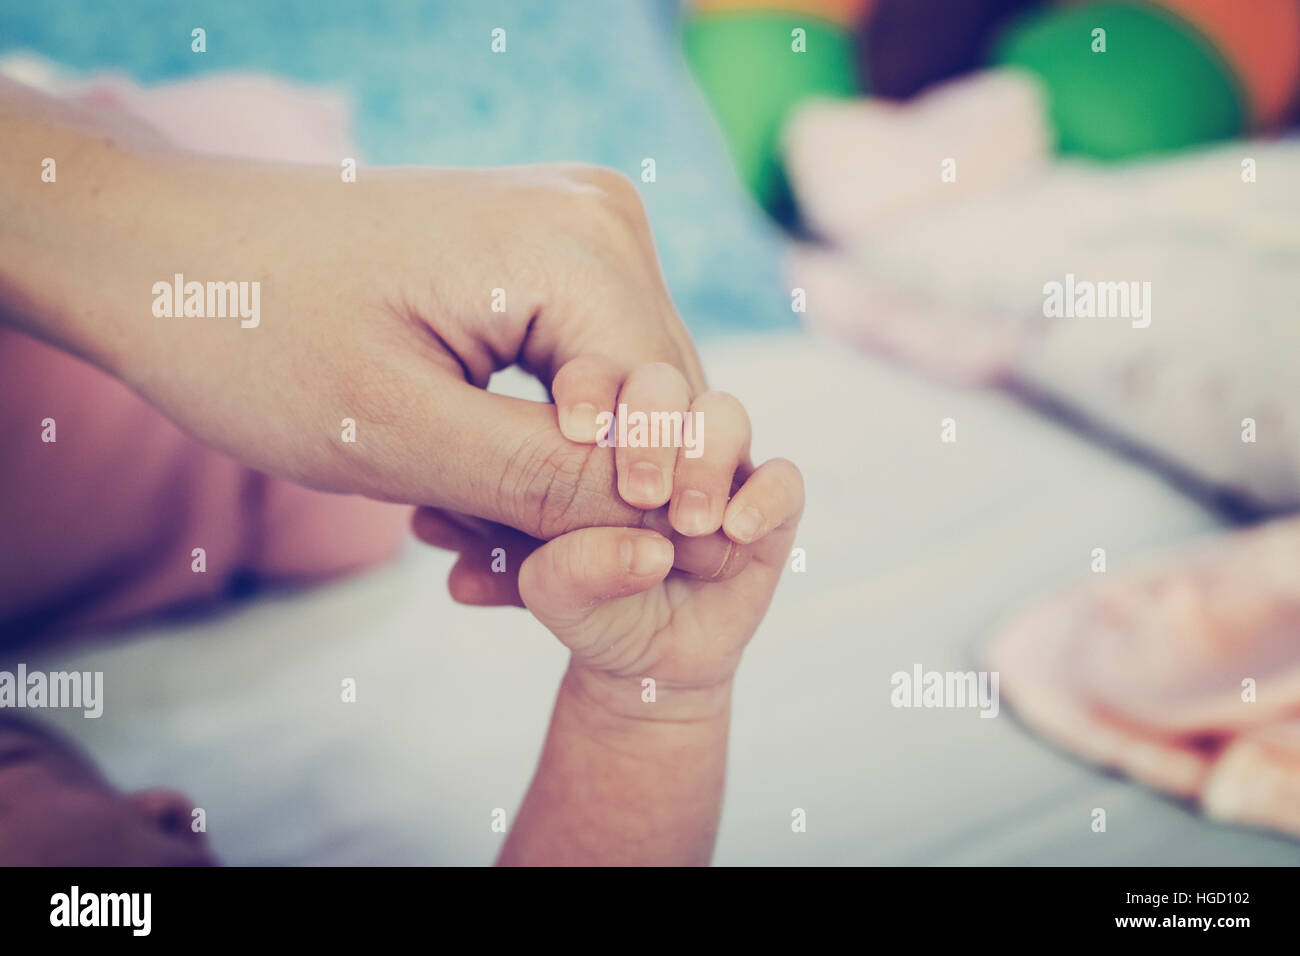 Close up hands of mother and baby - Stock Image